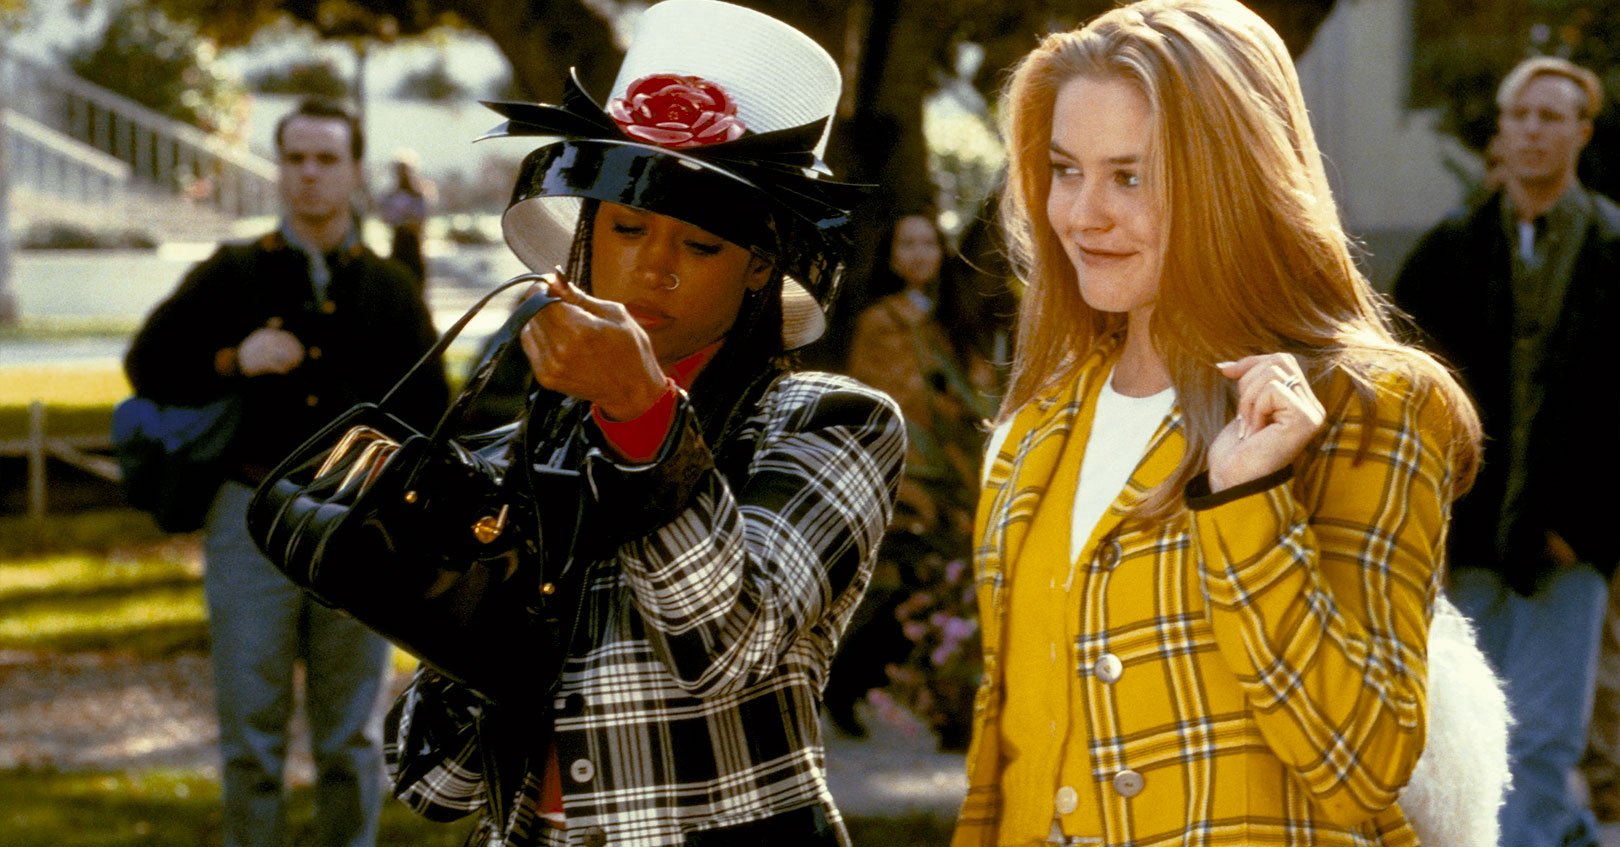 Clueless - Stacey Dash and Alicia Silverstone